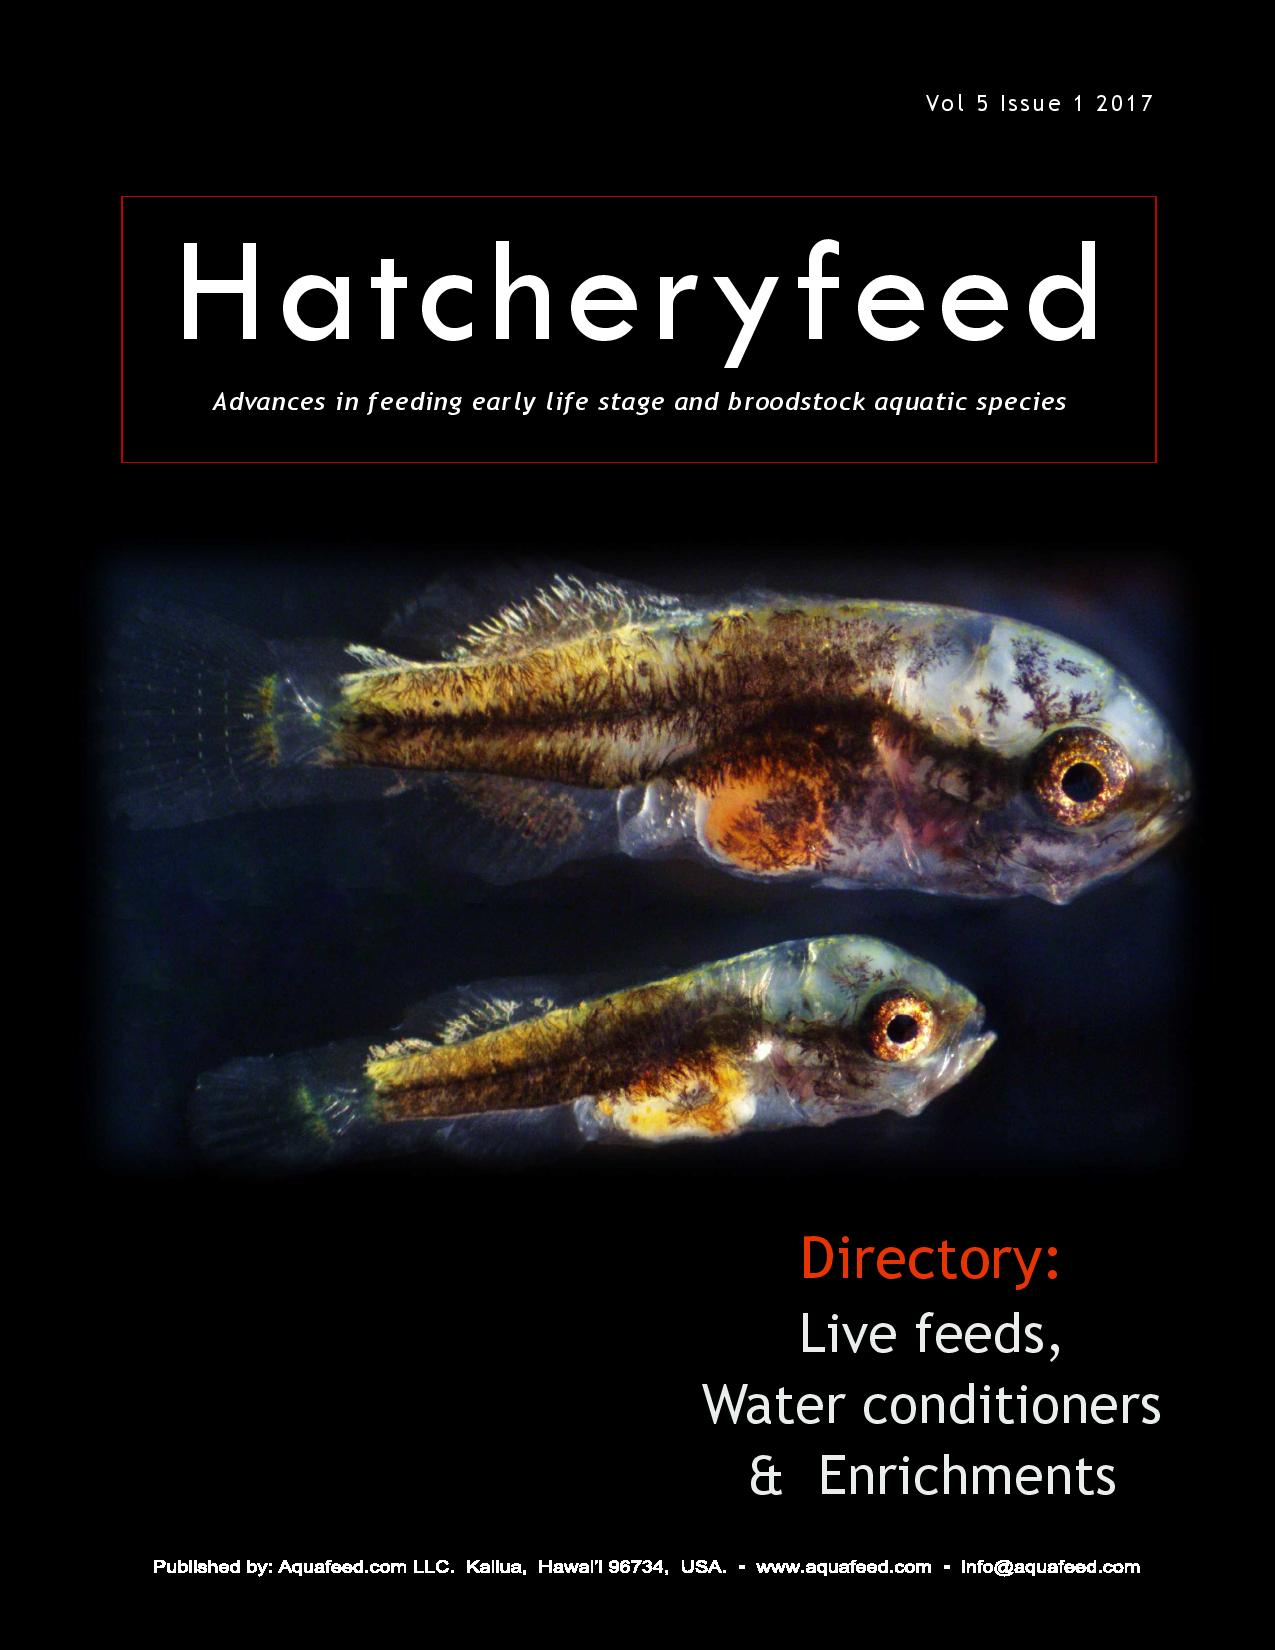 Hatcheryfeed vol 5 issue 1 2017 pg1-page-001